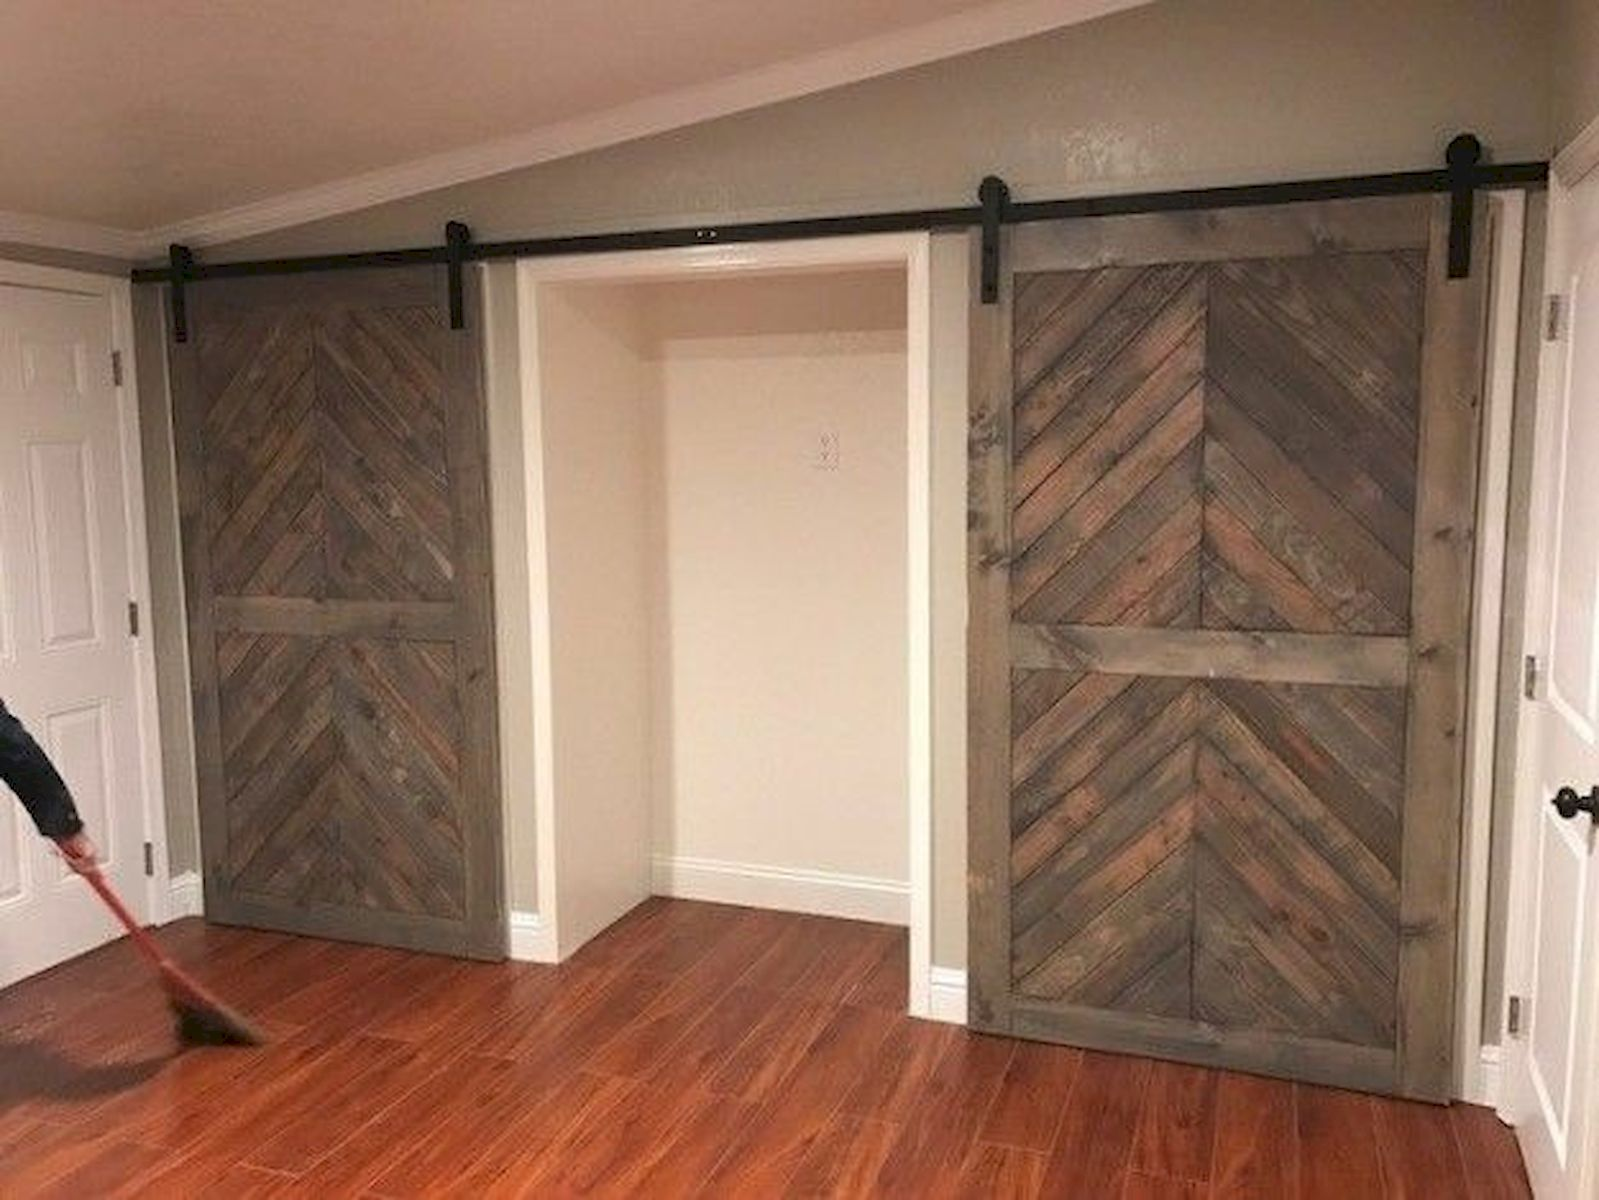 70 Rustic Home Decor Ideas for Doors and Windows (1)